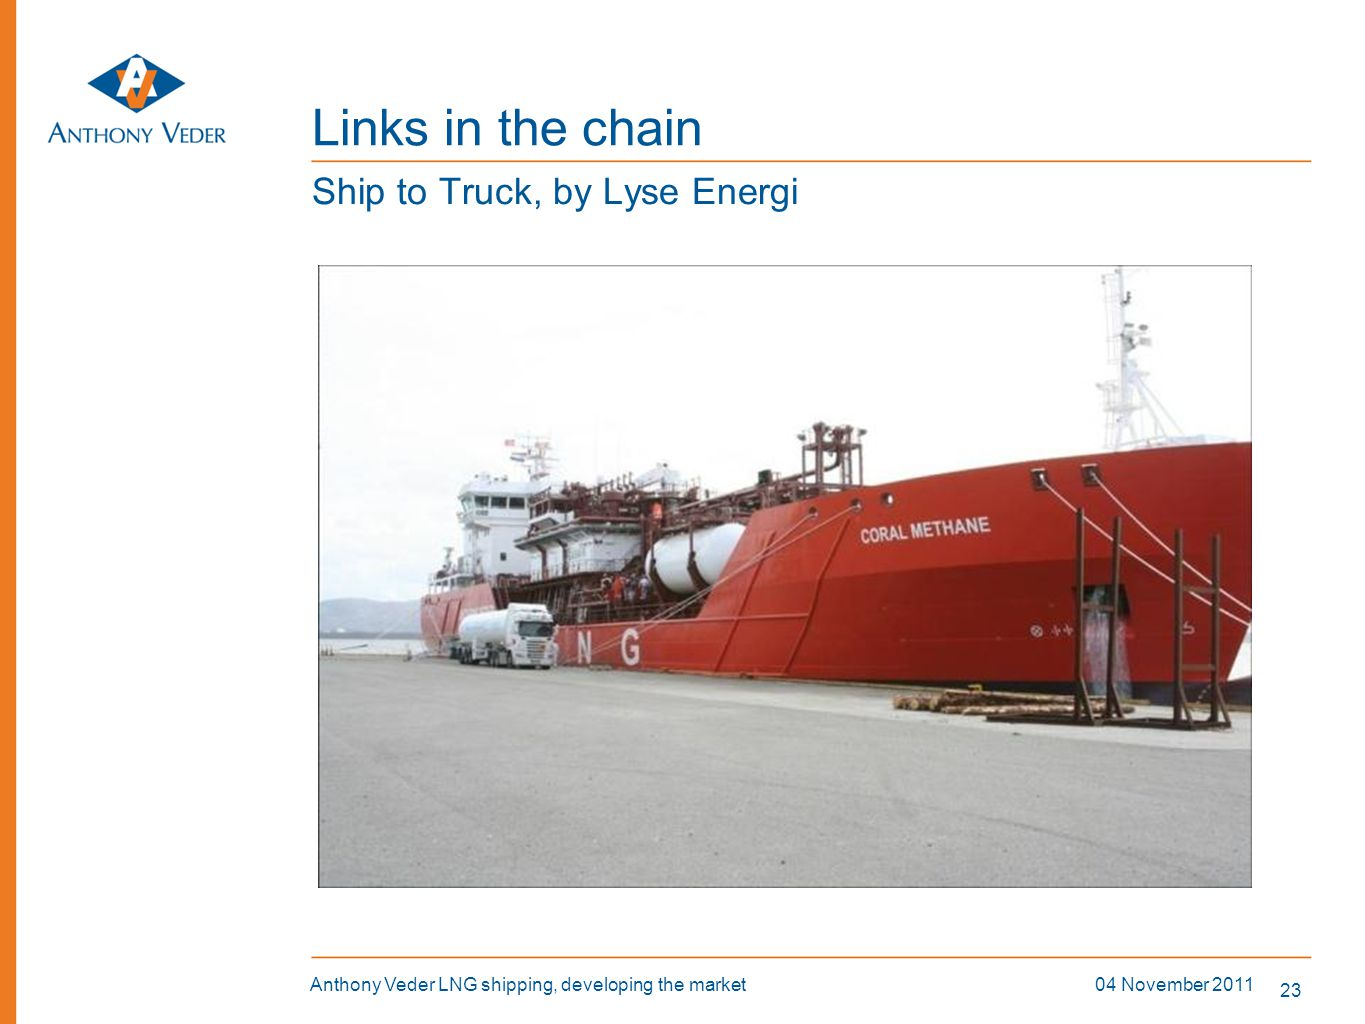 23 04 November 2011Anthony Veder LNG shipping, developing the market Links in the chain Ship to Truck, by Lyse Energi